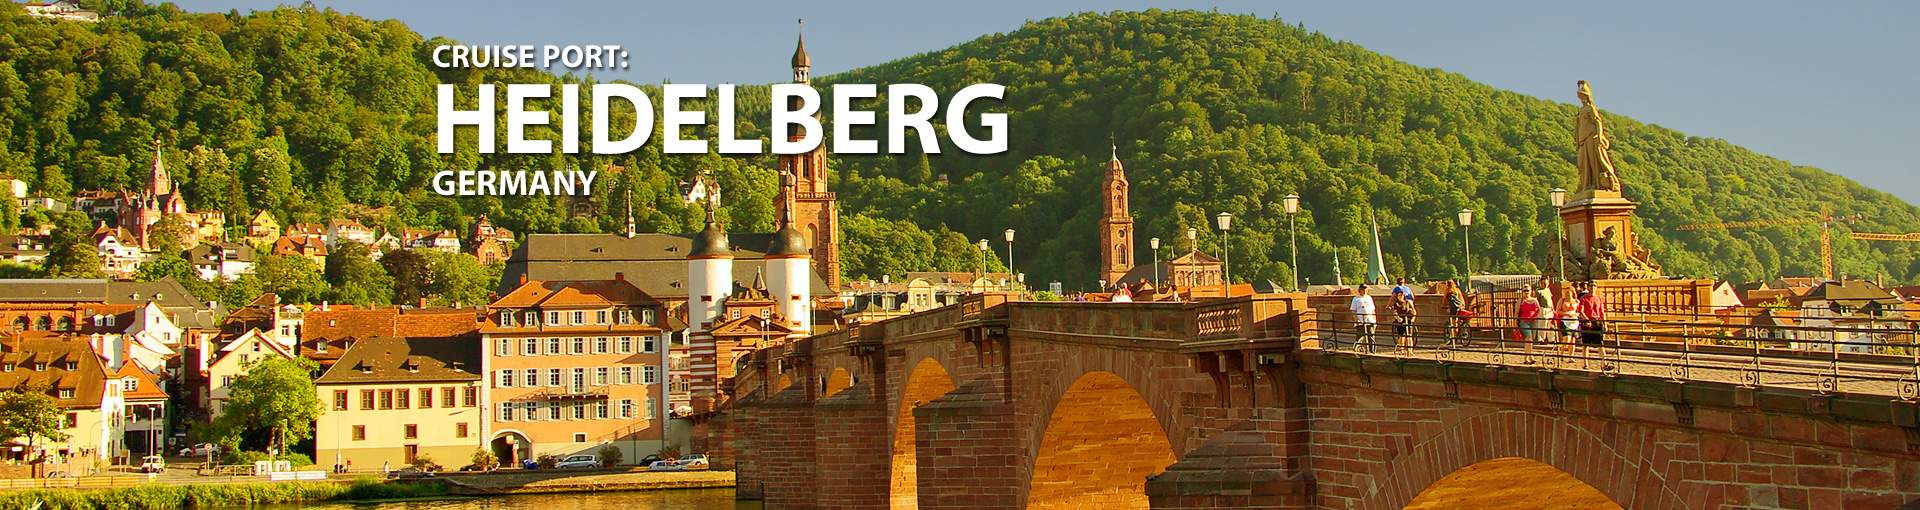 Cruises to Heidelberg,Germany